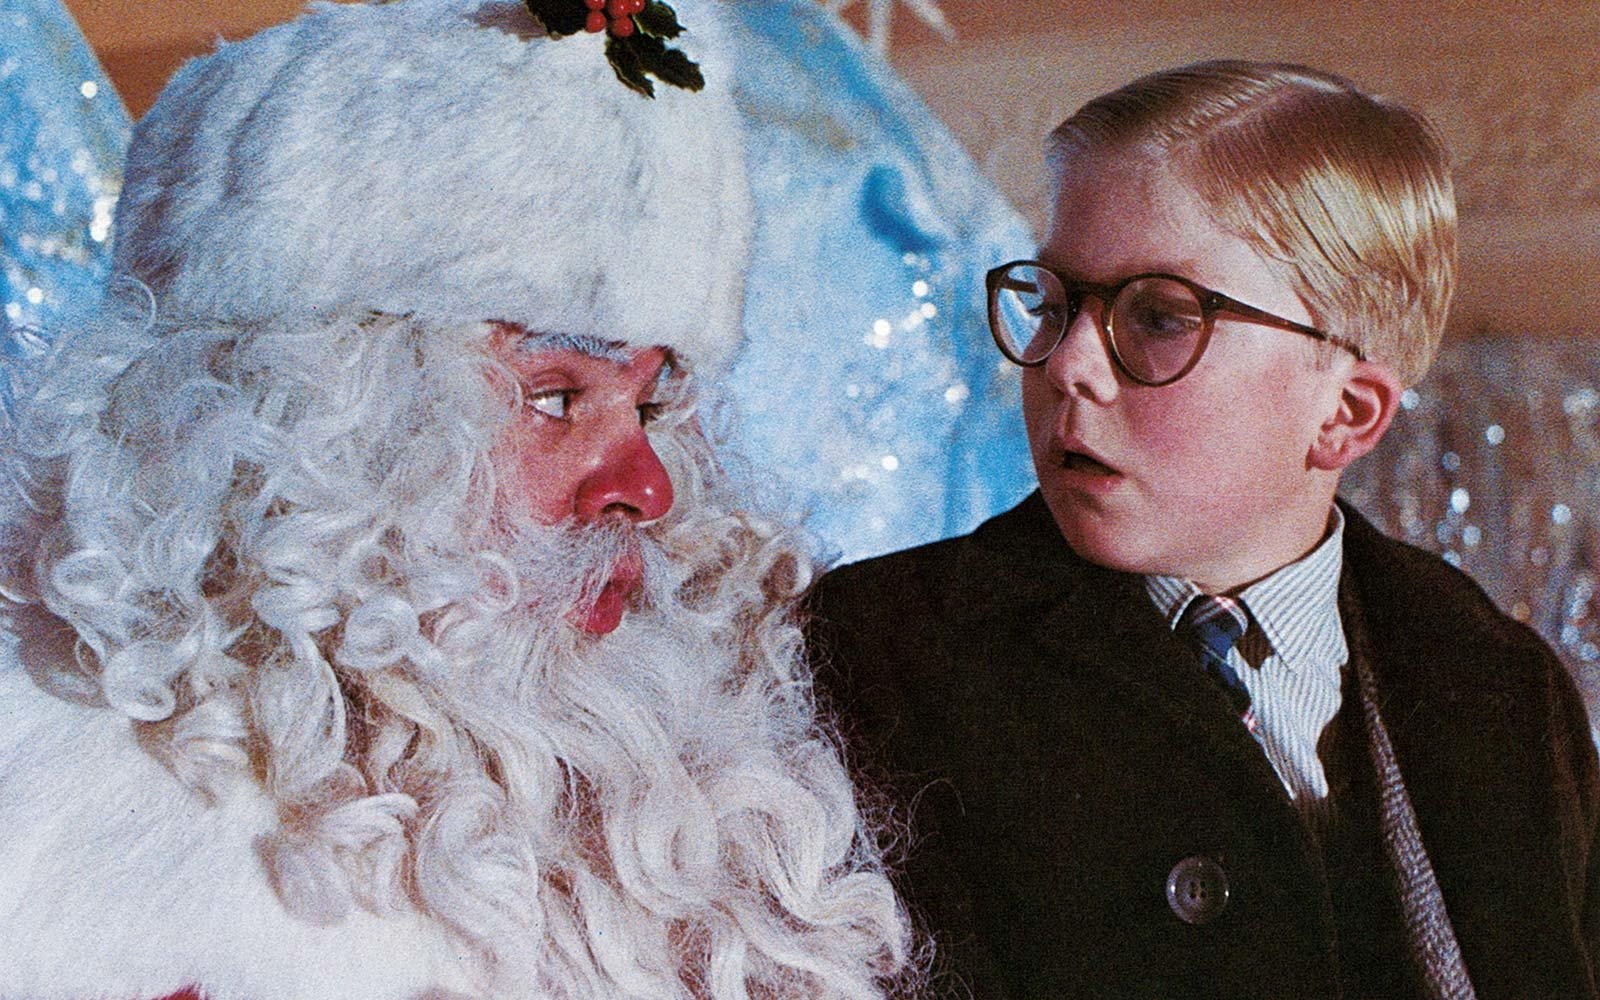 a christmas story classic holiday film